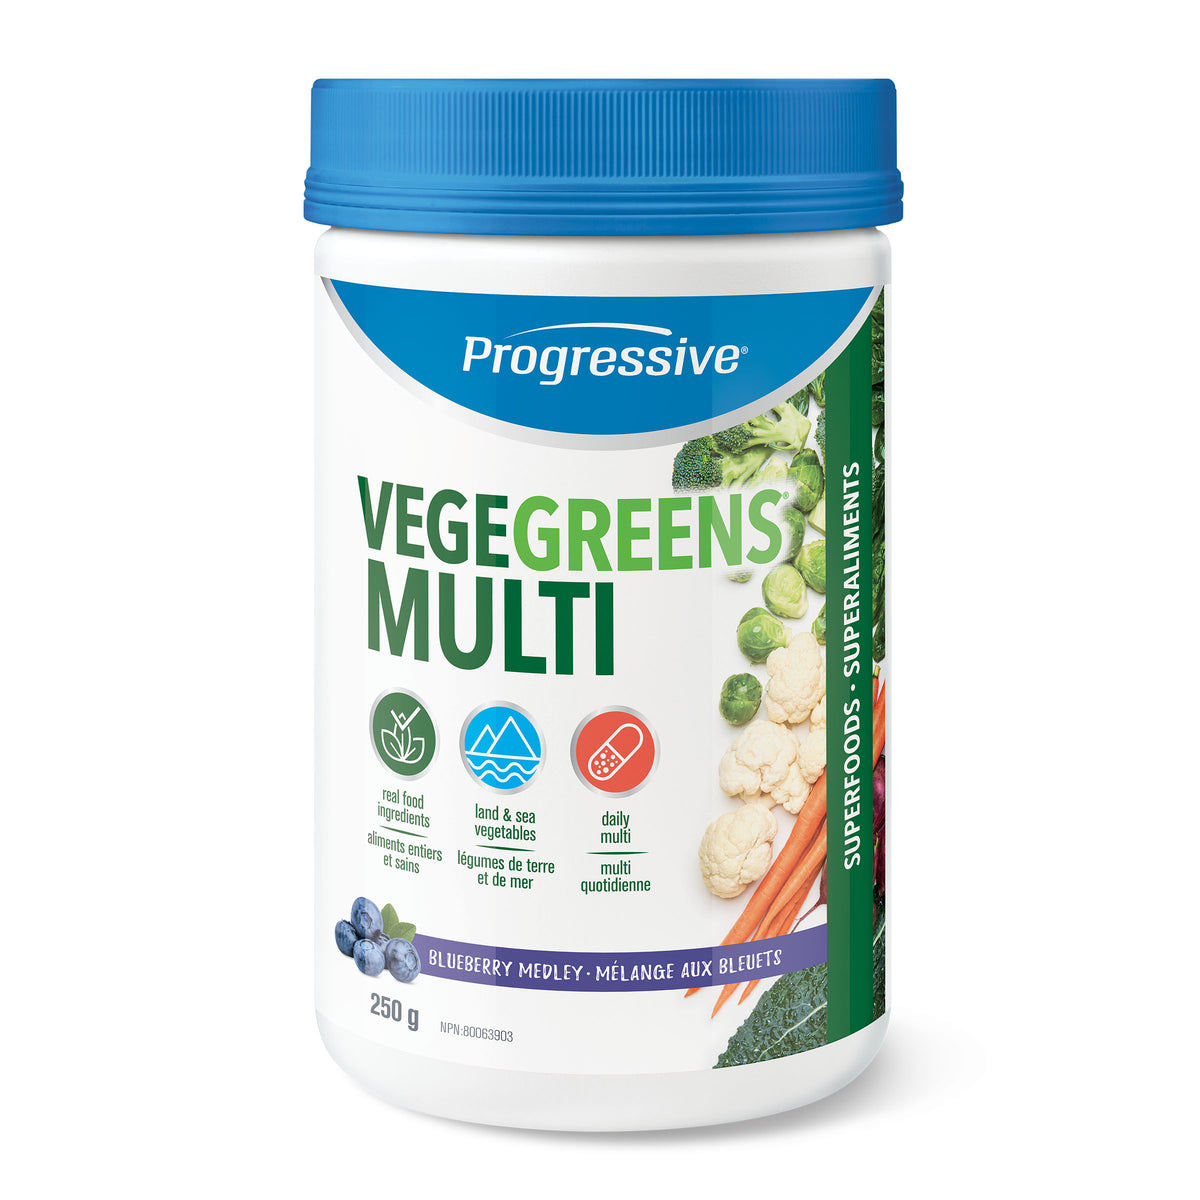 PV3360 VegeGreens Multi